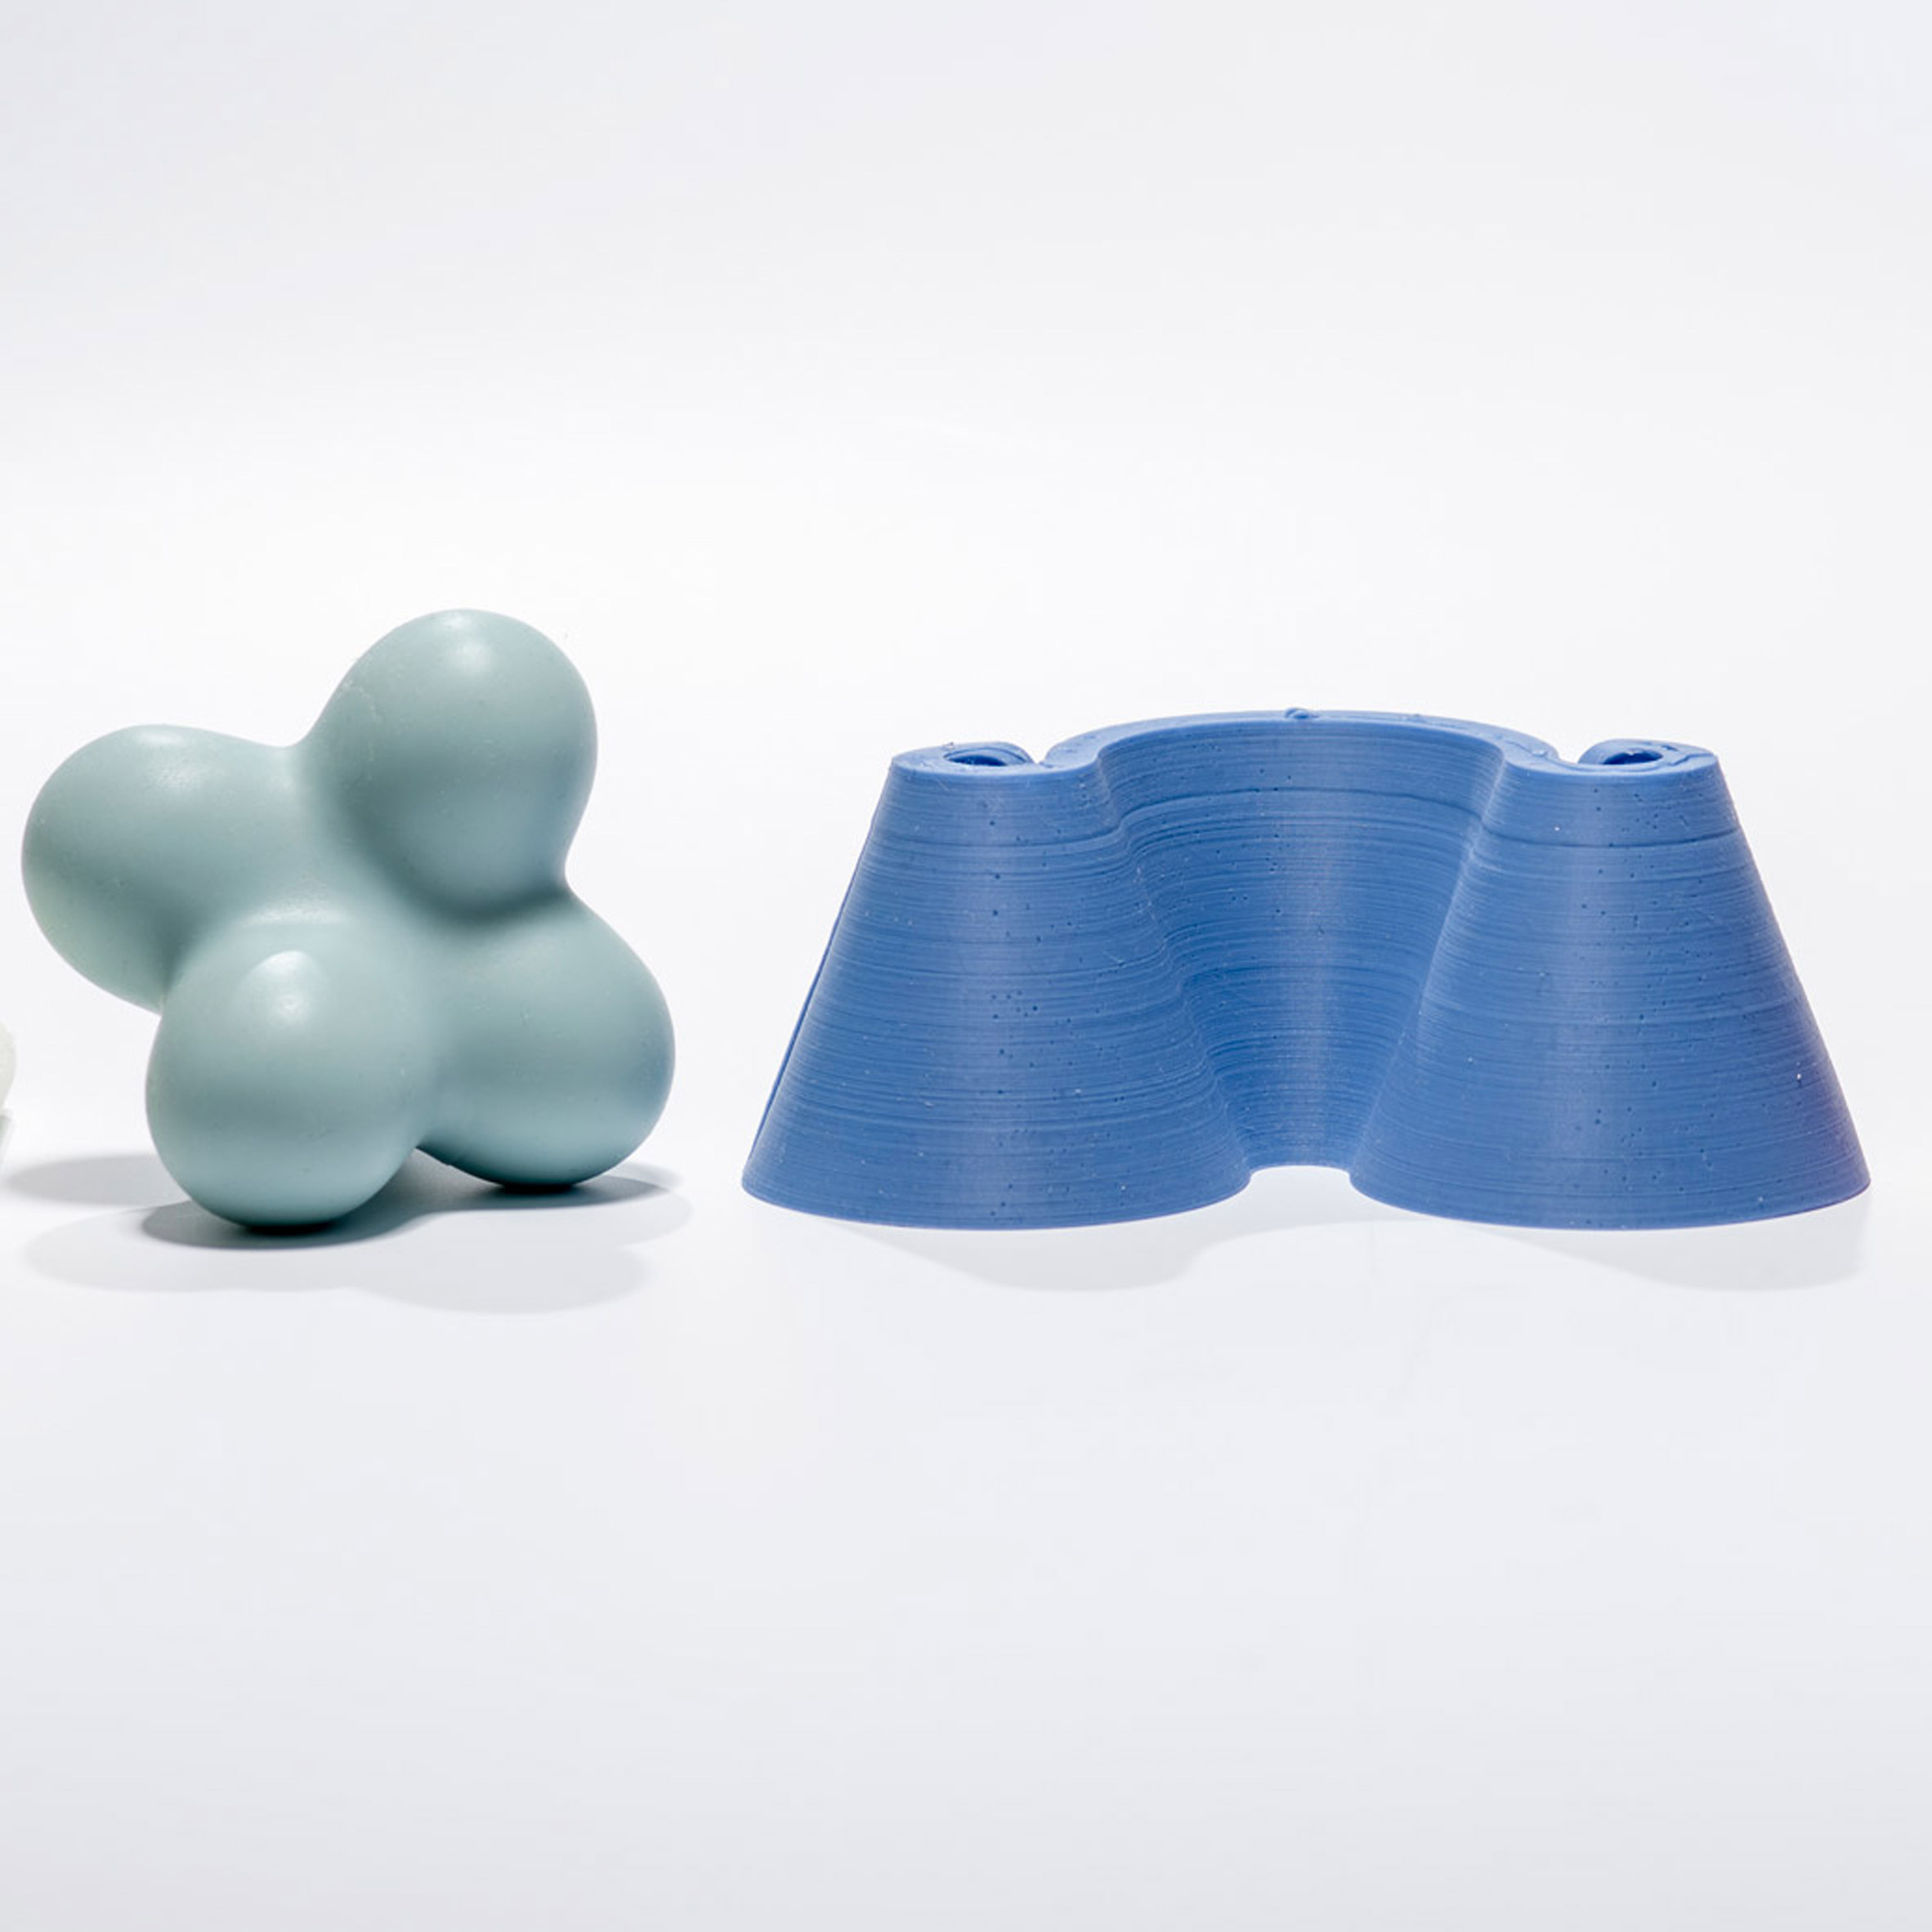 Paula Lorence creates tactile objects for children with autism